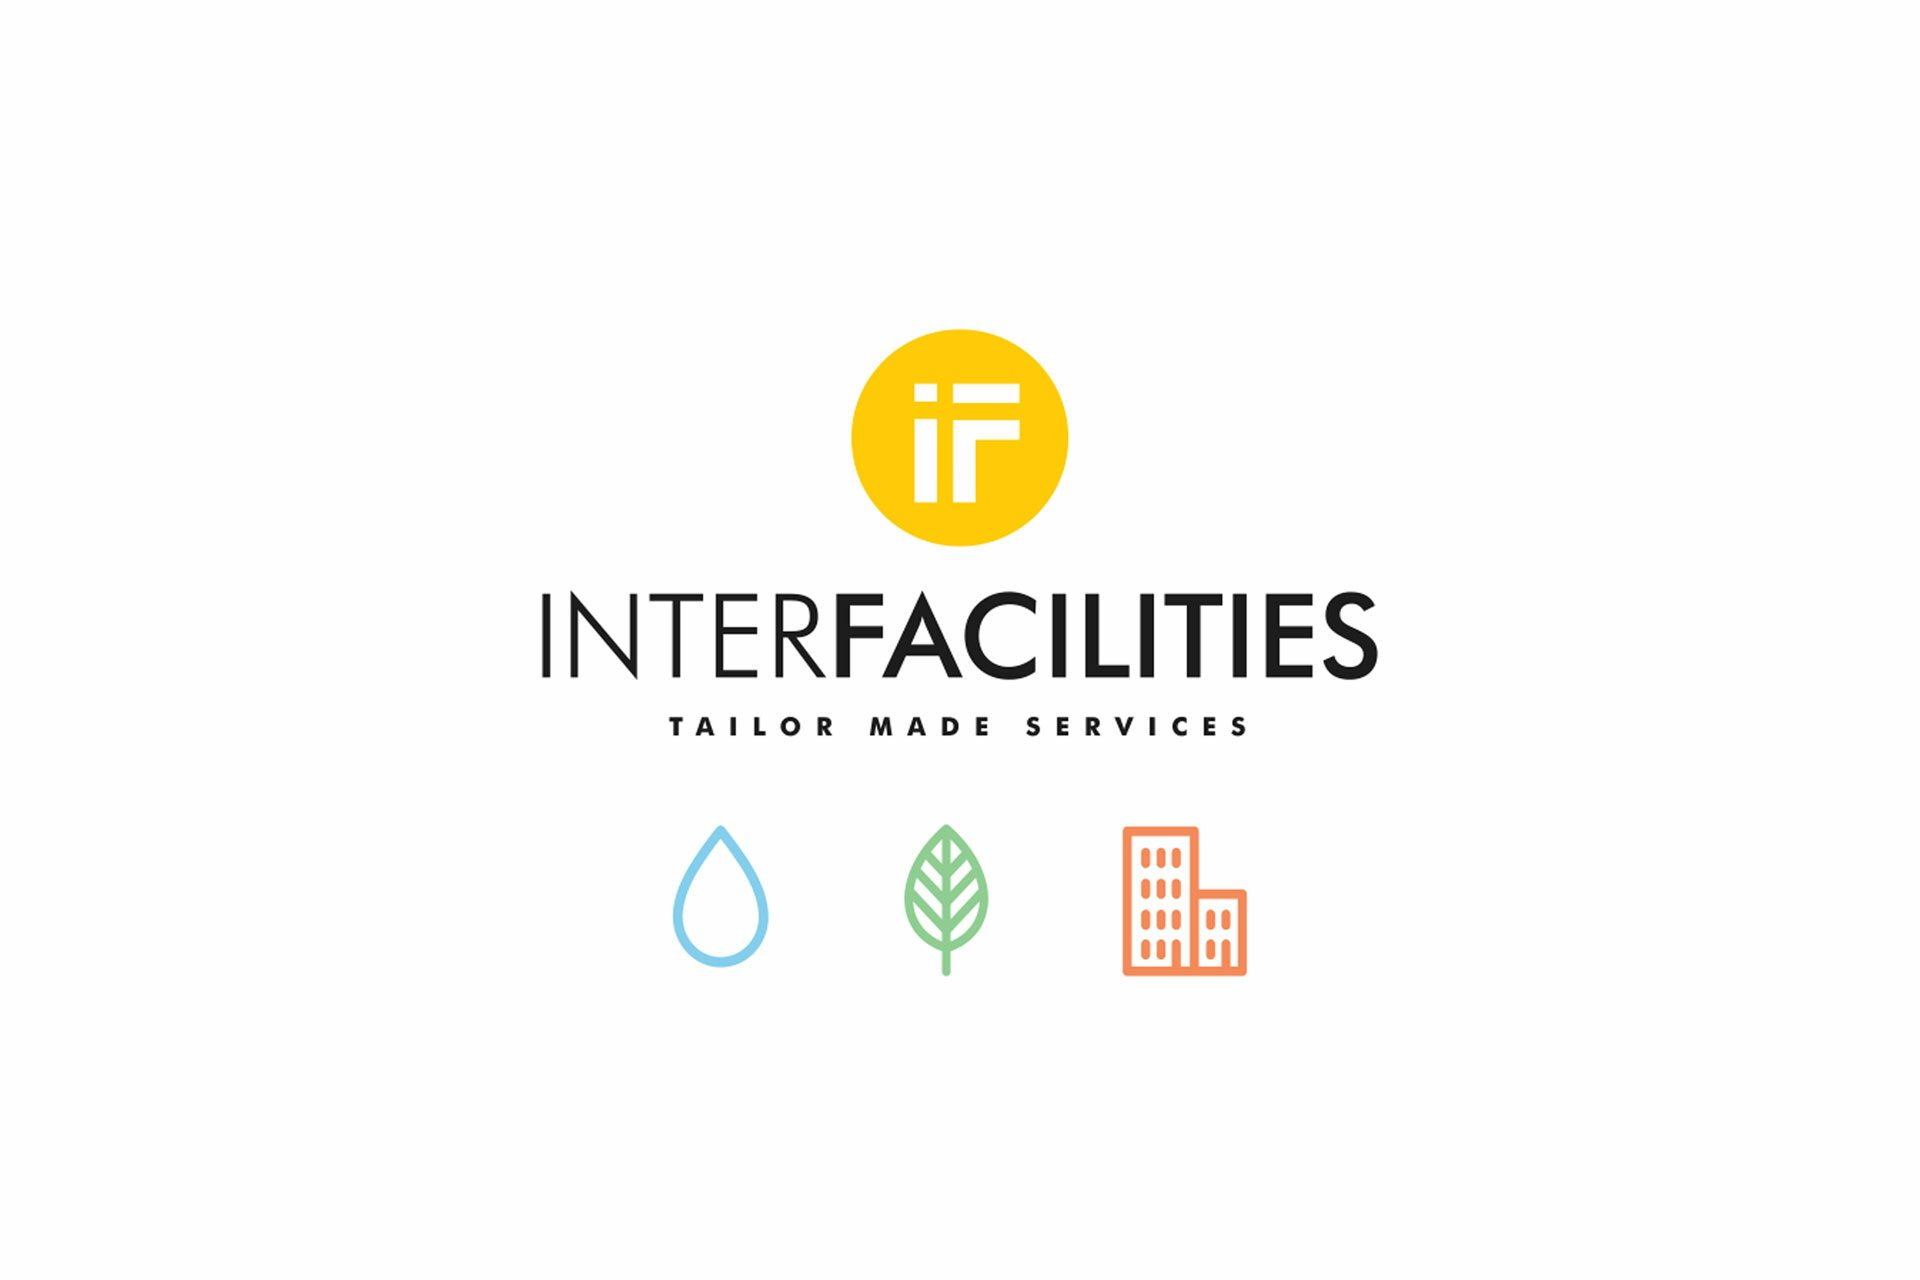 Afbeelding Interfacilities Brand Identity